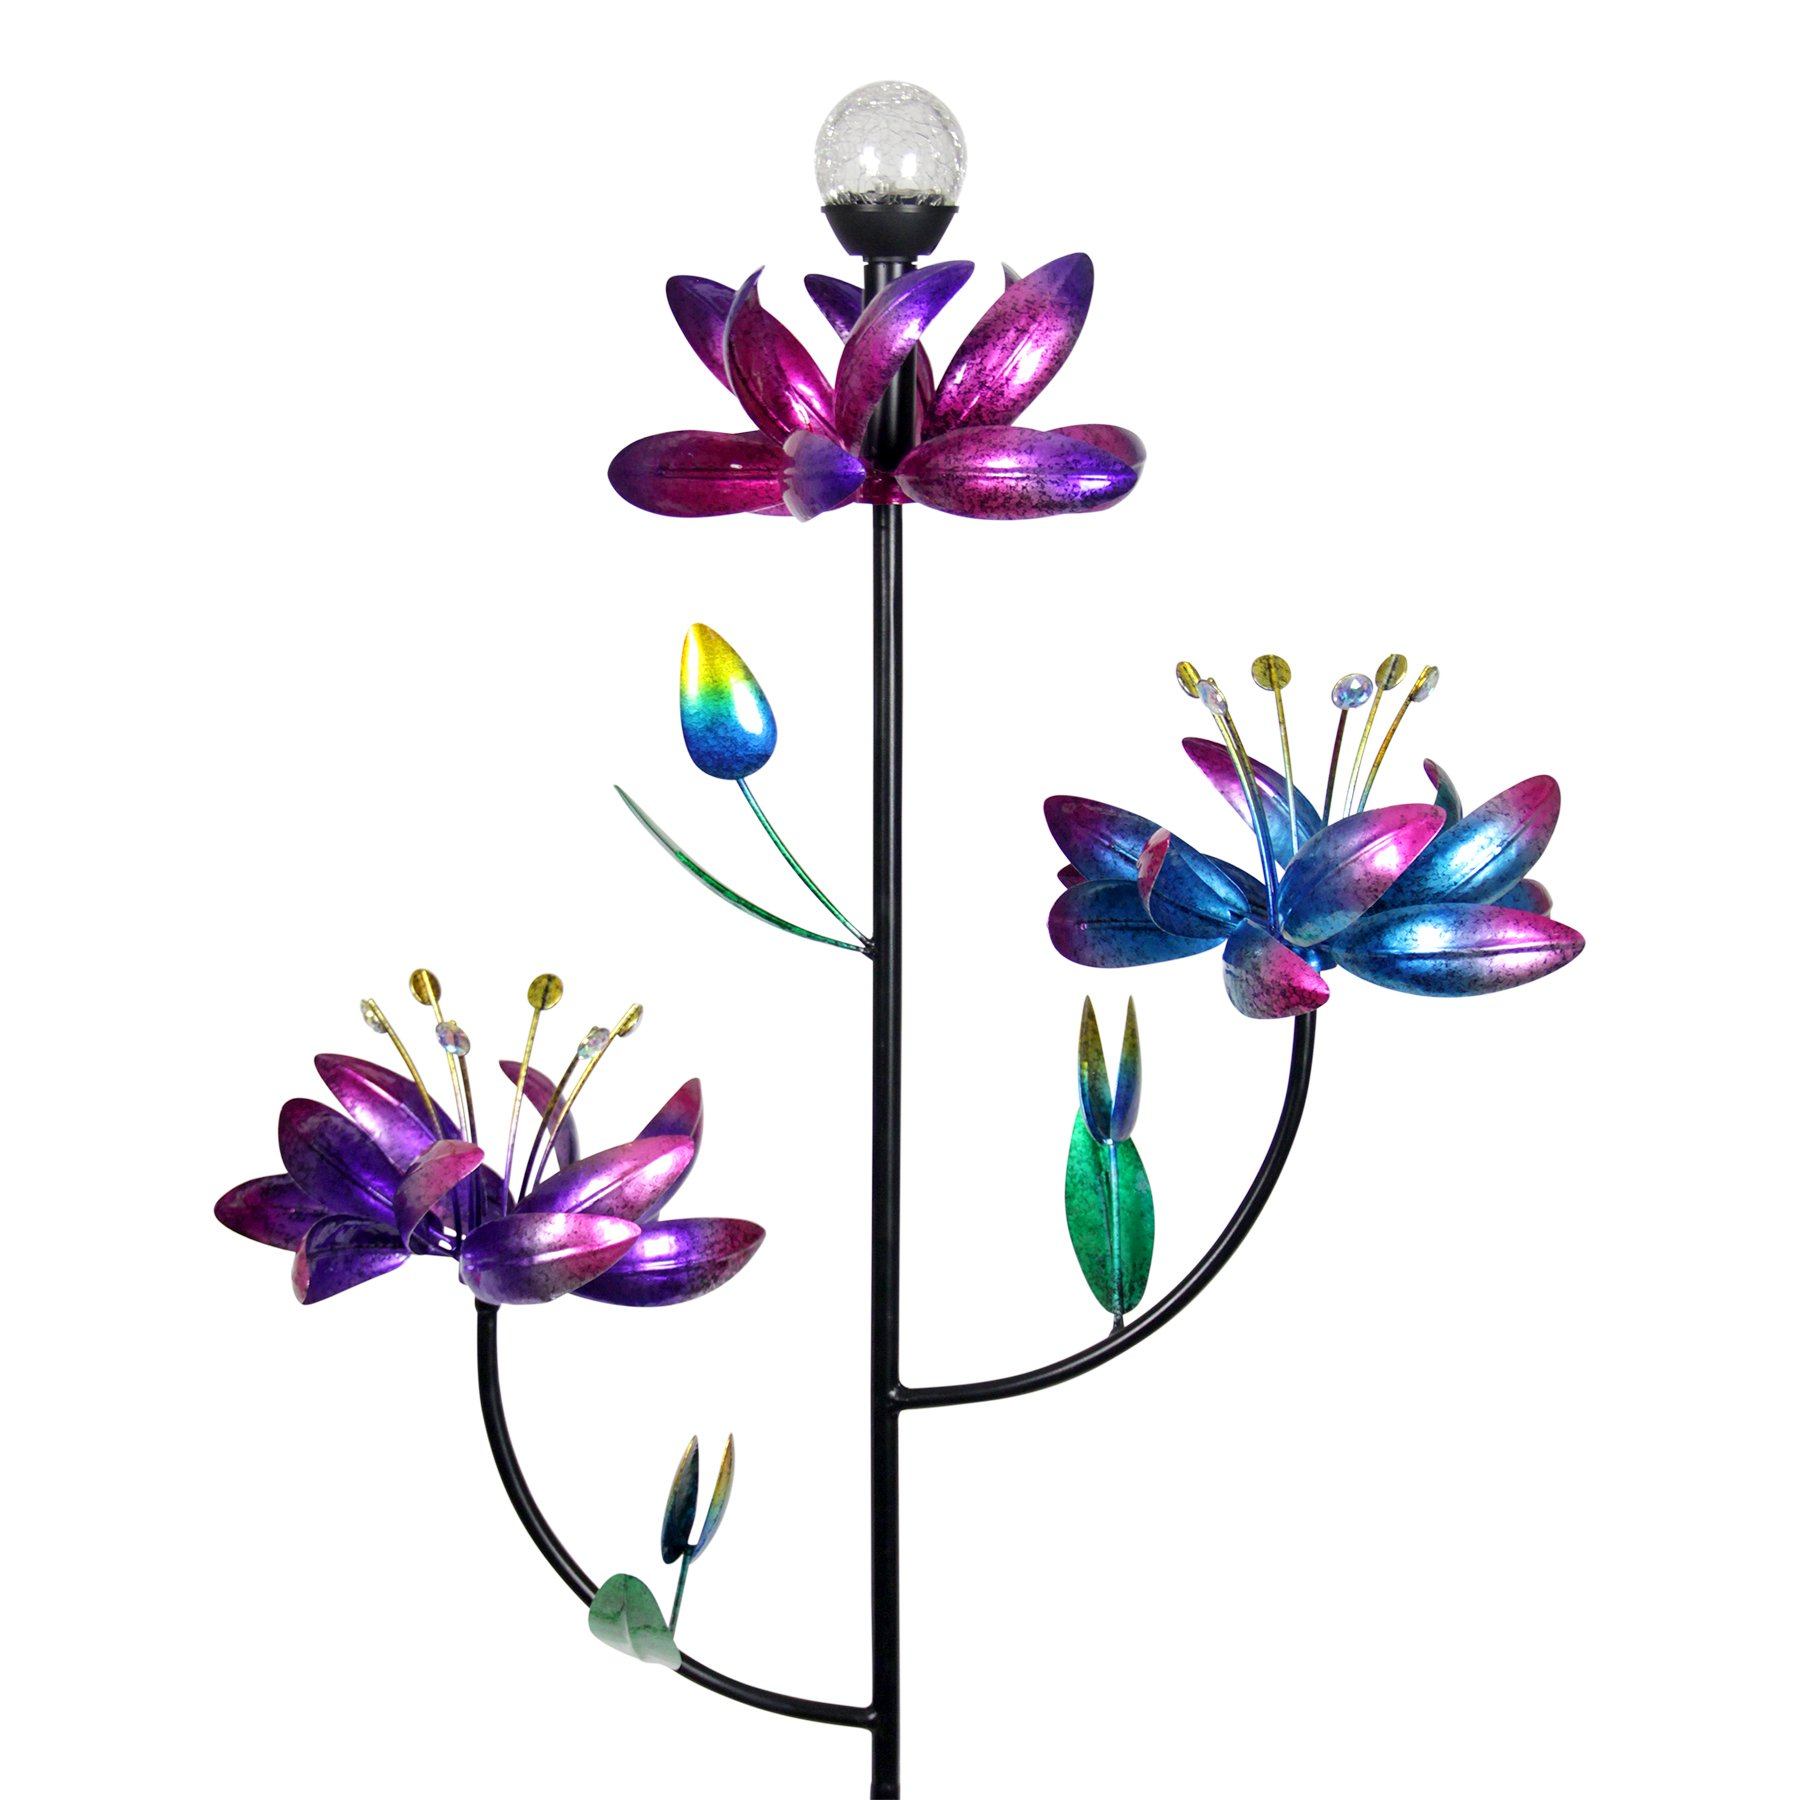 Exhart Triple Spinning Flower Garden Stake, Each Flower Spins Independently, Light Up Crackle Ball, Solar Powered